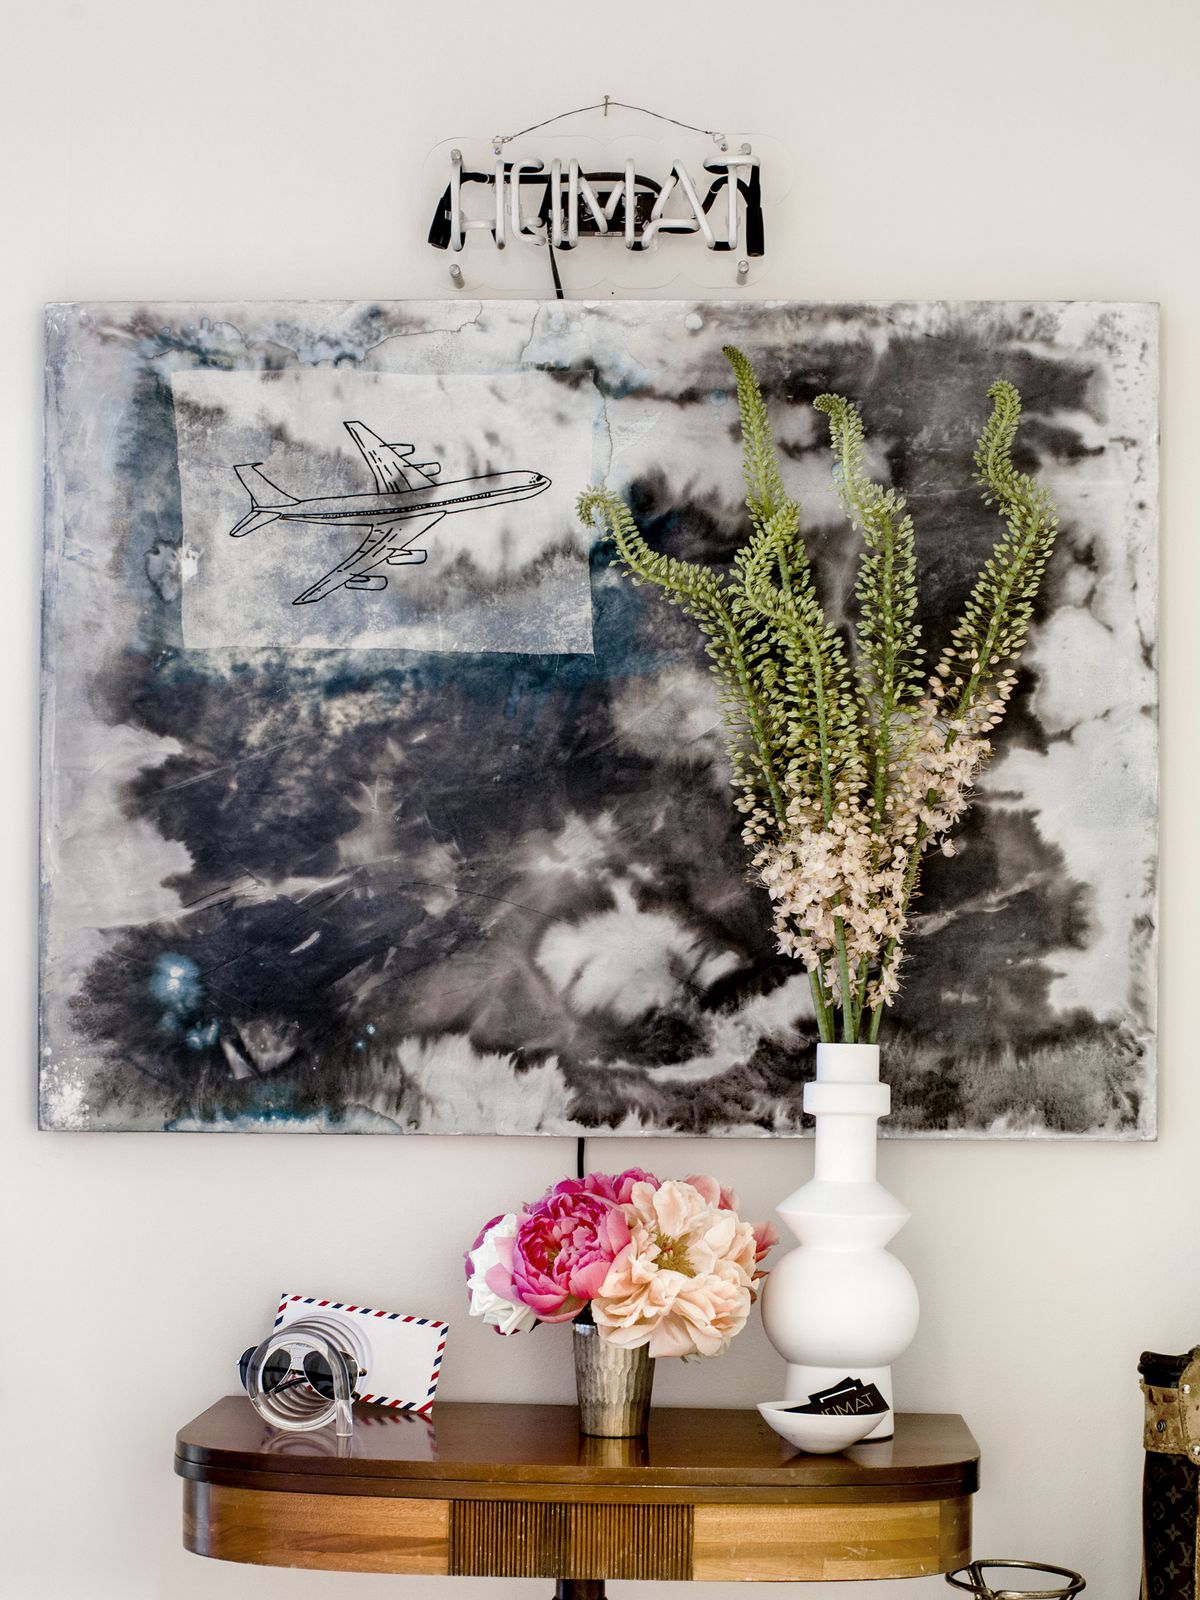 """In the entry, an abstract blue artwork hangs over a console table and below a neon sign that says """"heimat."""""""